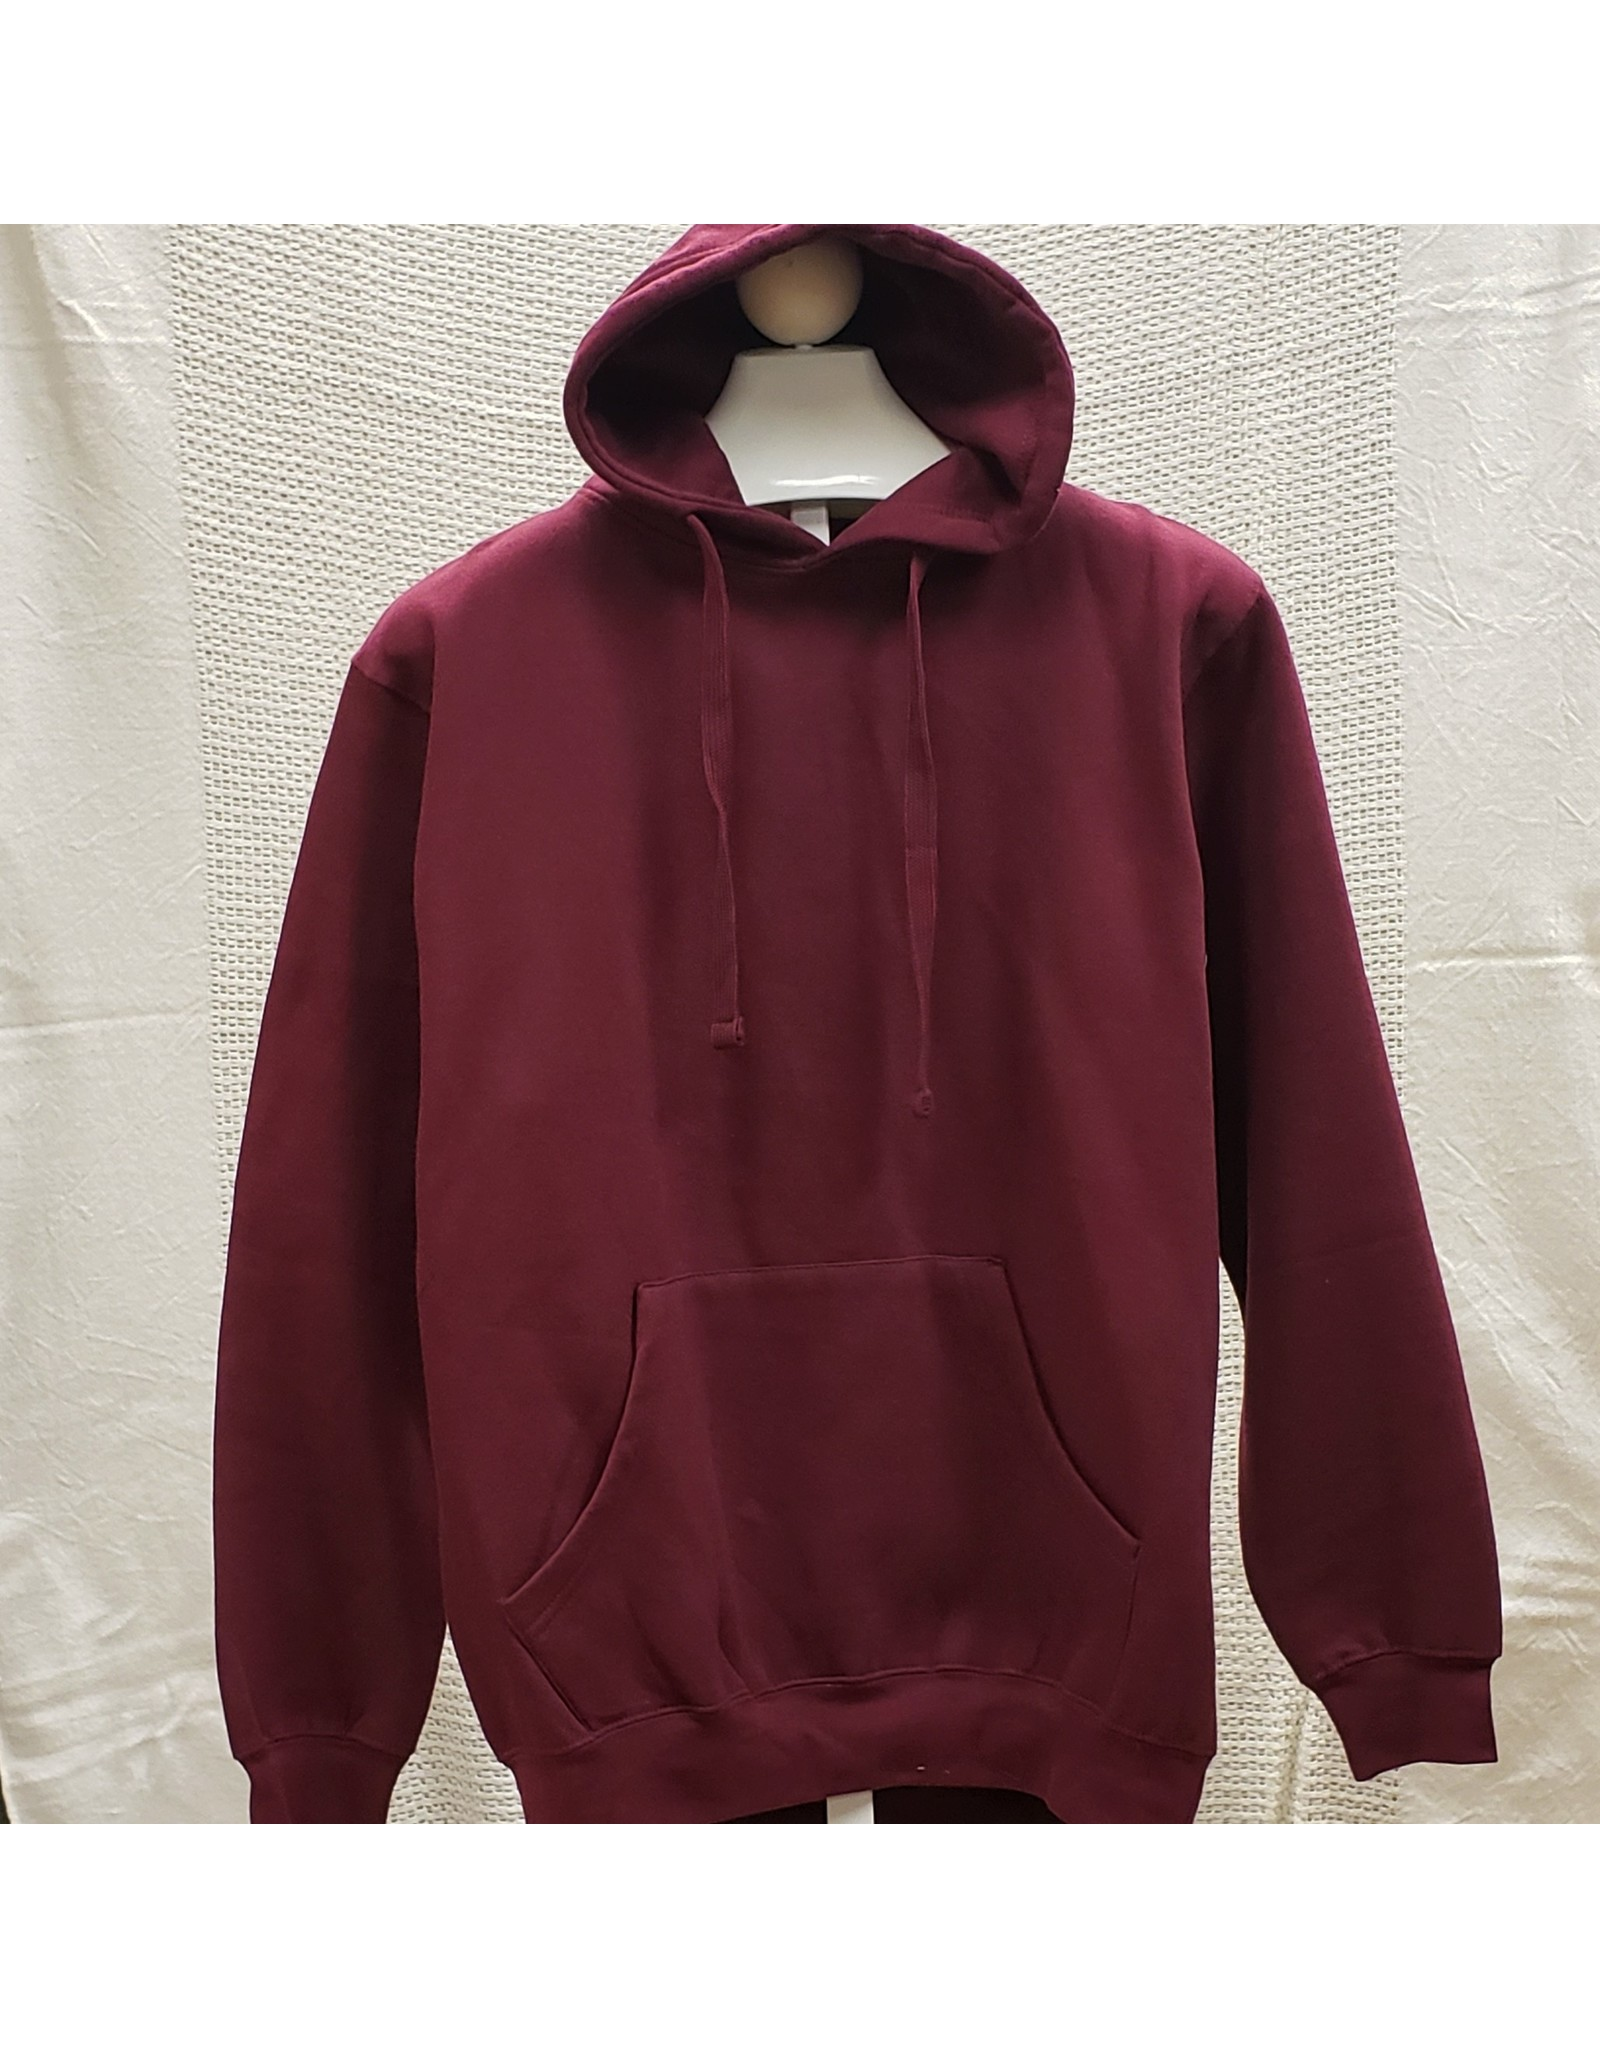 MARSHLANDS MILLTEX PLAIN PULLOVER HOODIES